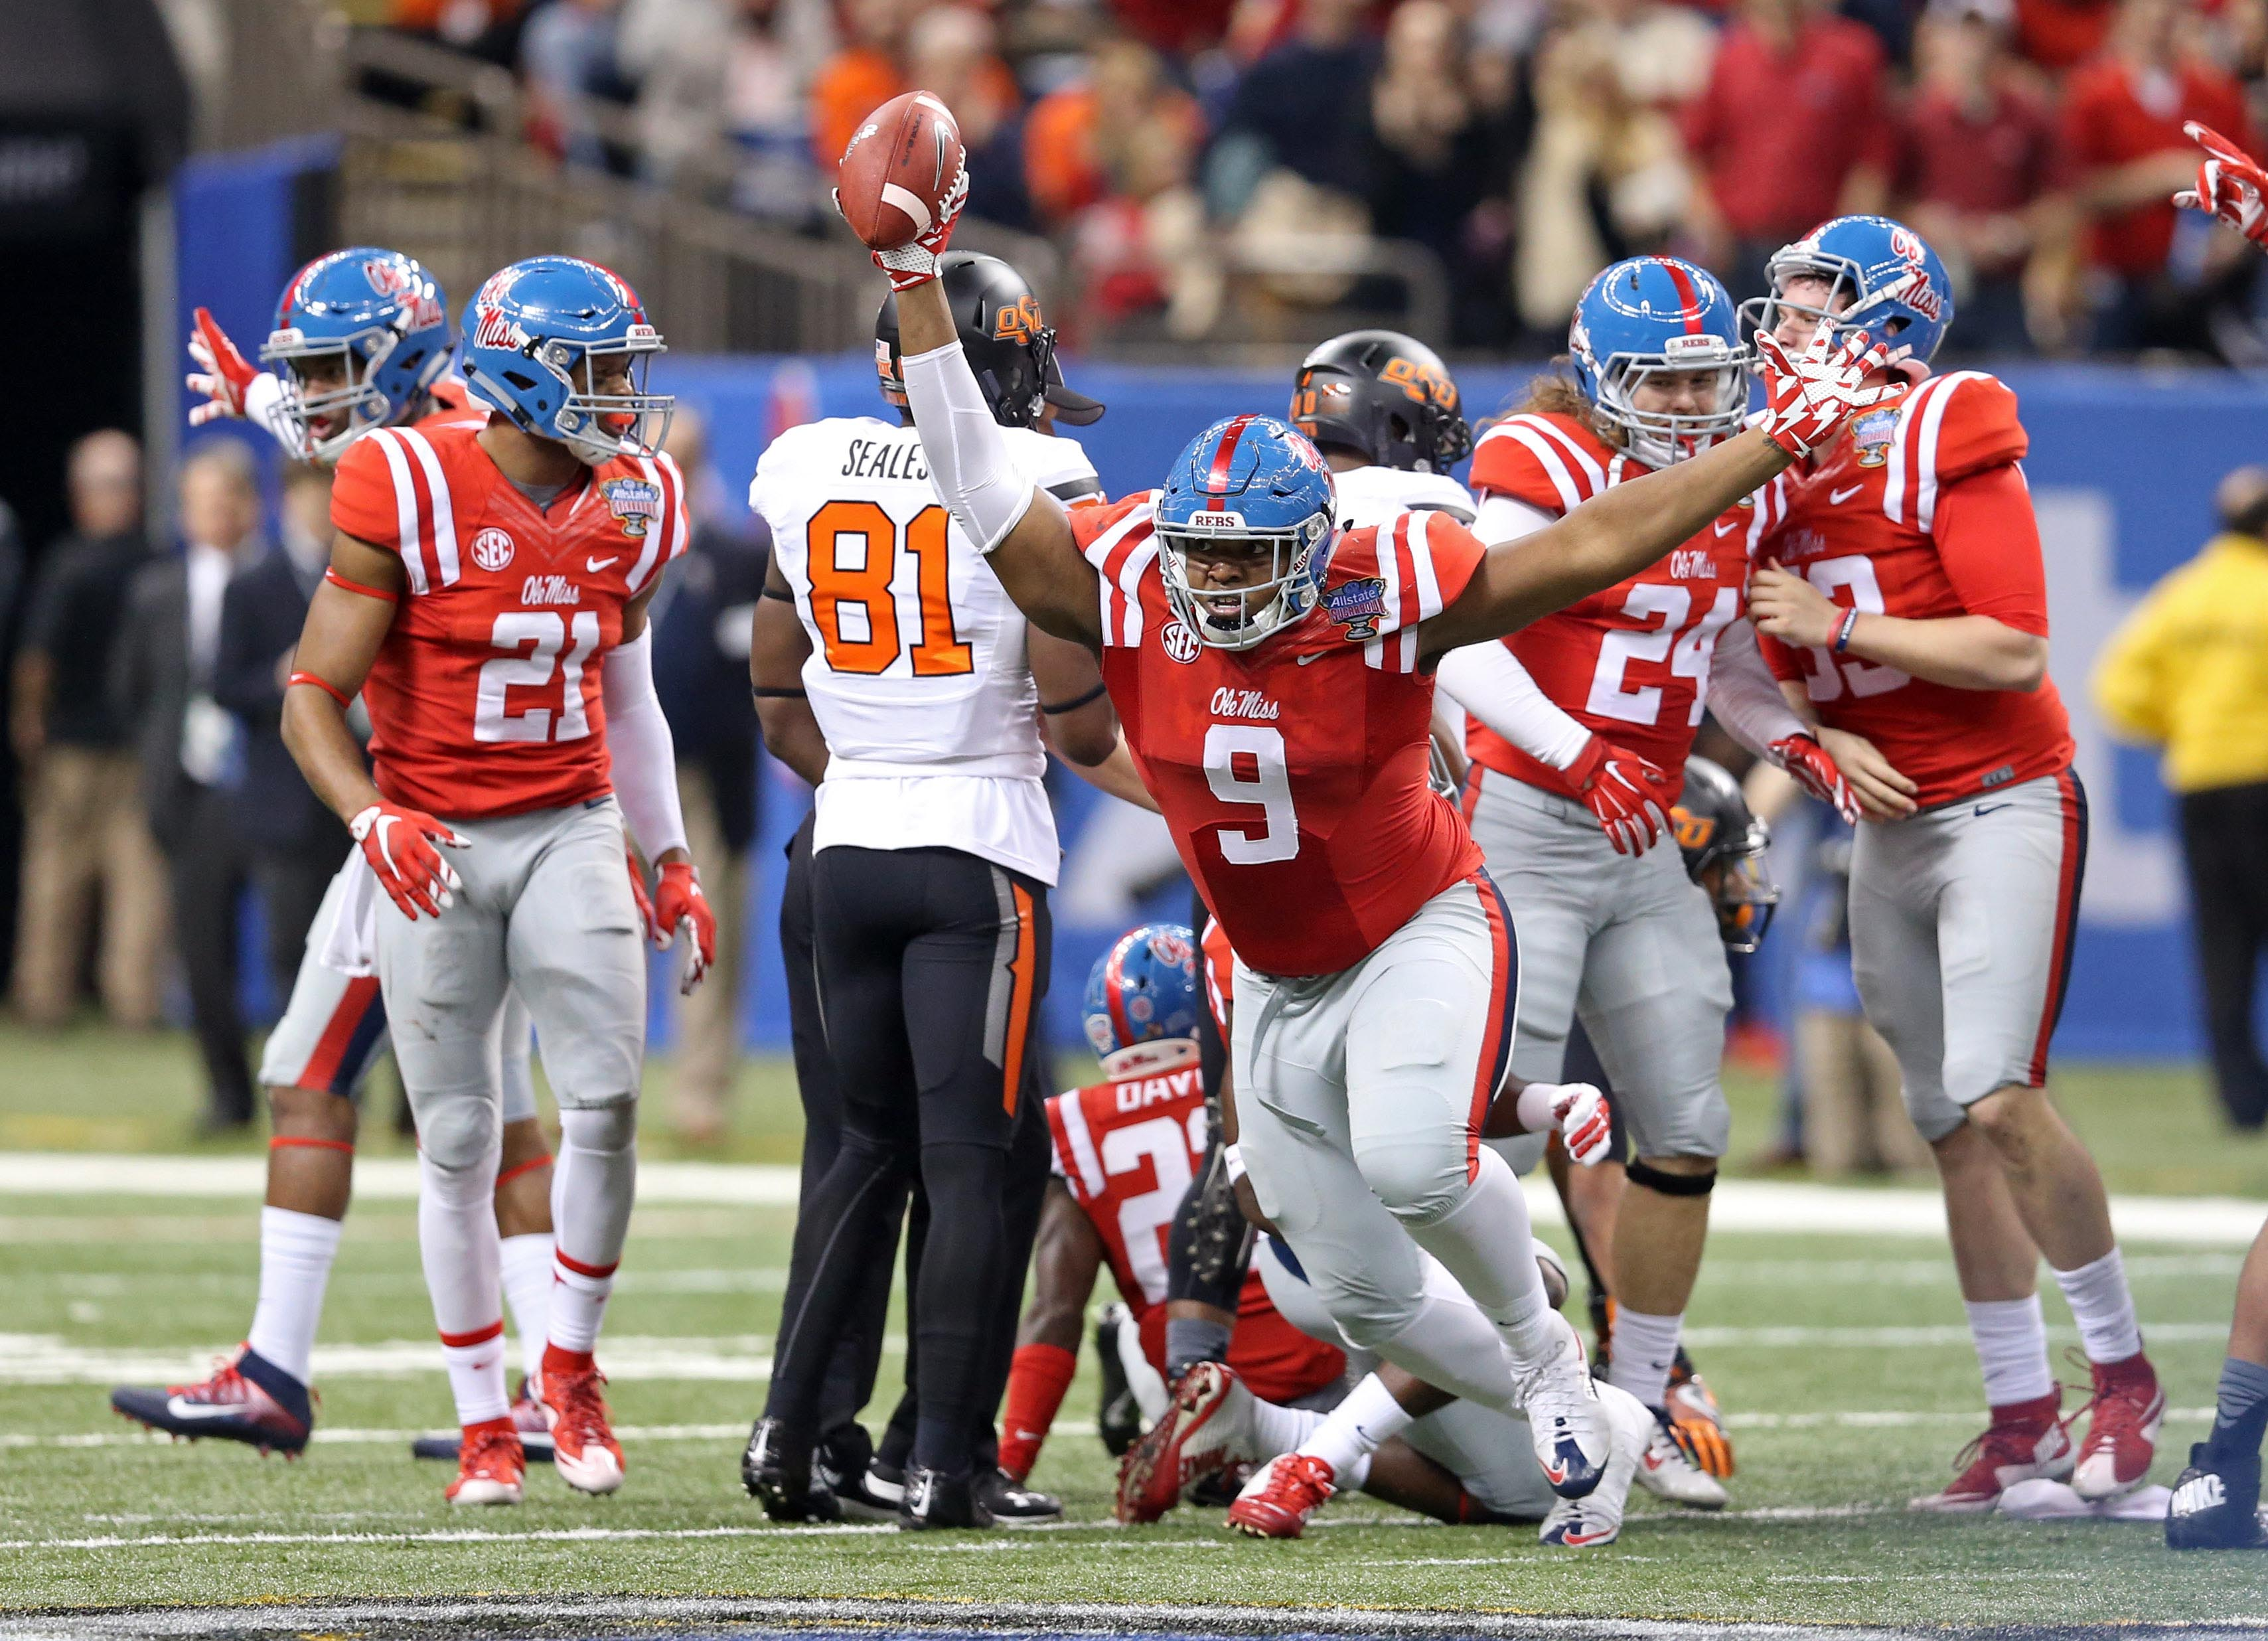 Jan 1, 2016; New Orleans, LA, USA; Mississippi Rebels defensive tackle Breeland Speaks (9) celebrates his fumble recovery in the third quarter against the Oklahoma State Cowboys in the 2016 Sugar Bowl at the Mercedes-Benz Superdome. Mandatory Credit: Chuck Cook-USA TODAY Sports